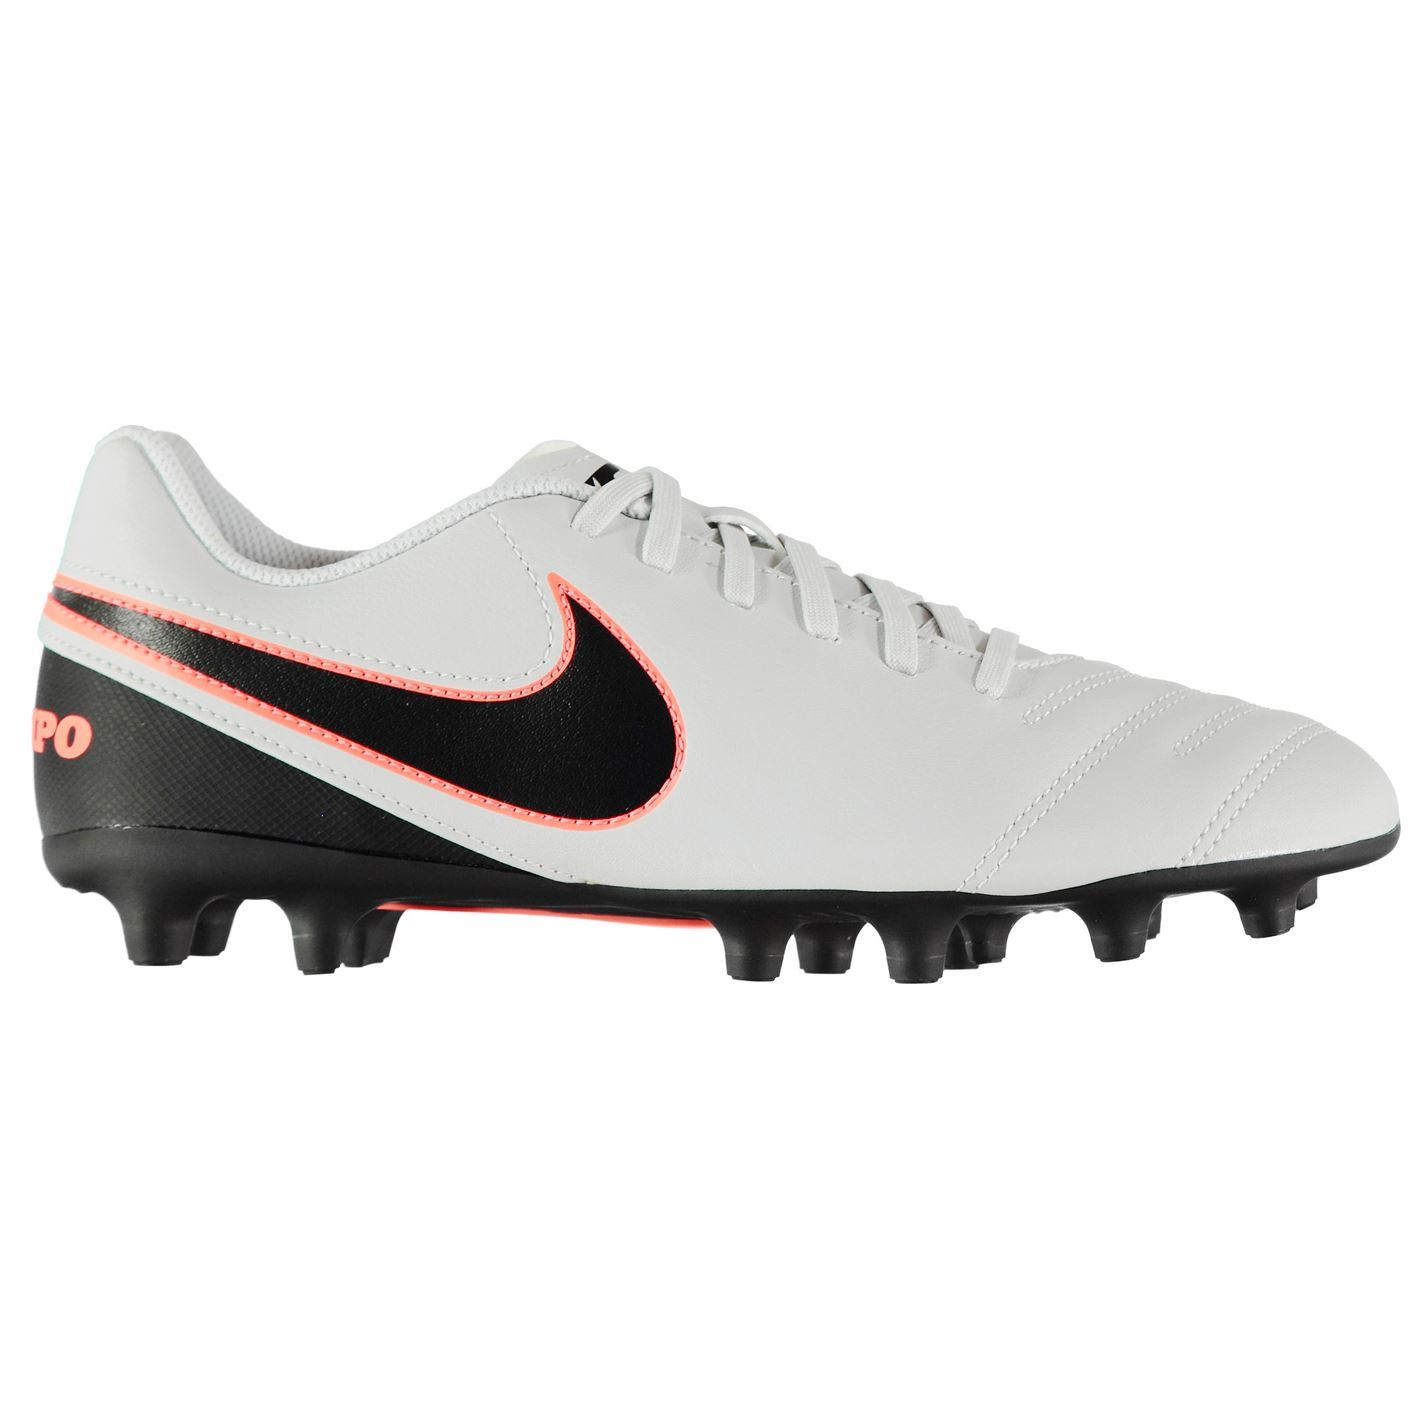 a80de4ea6d2 Nike Tiempo Rio FG Firm Ground Football Boots Mens Soccer Shoes ...